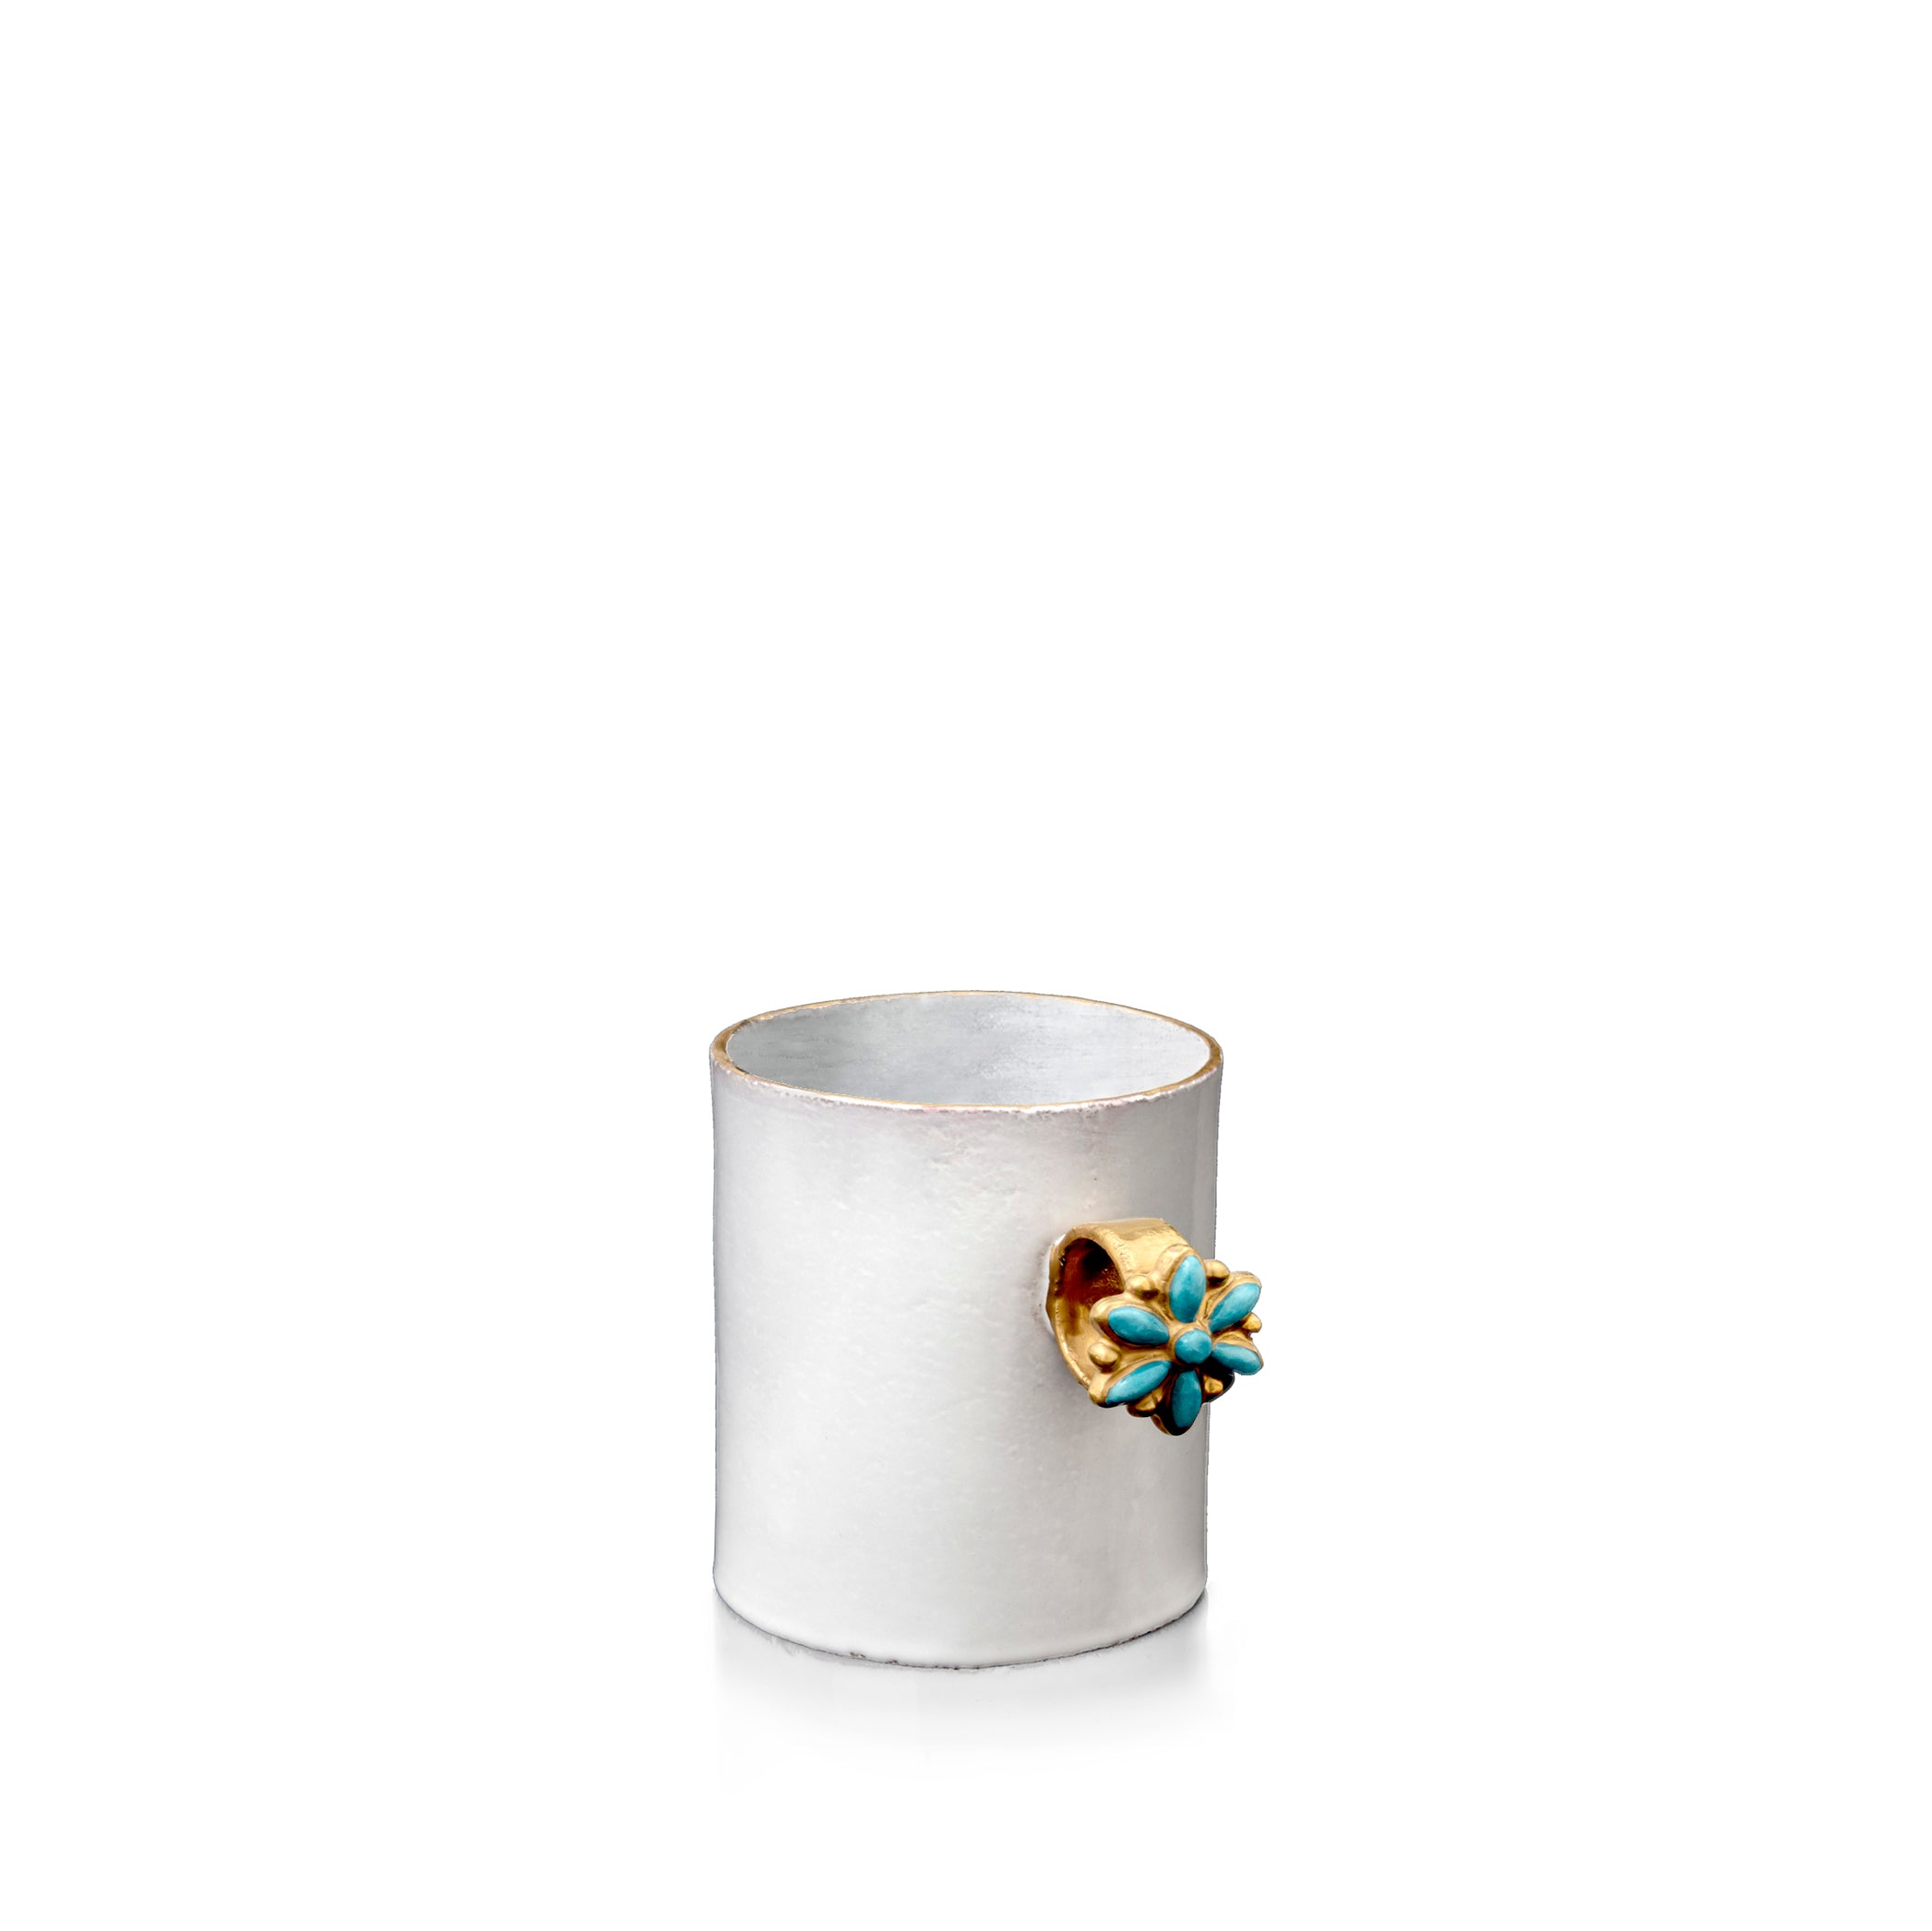 Serena Blue Flower Ring Mug by Astier de Villatte